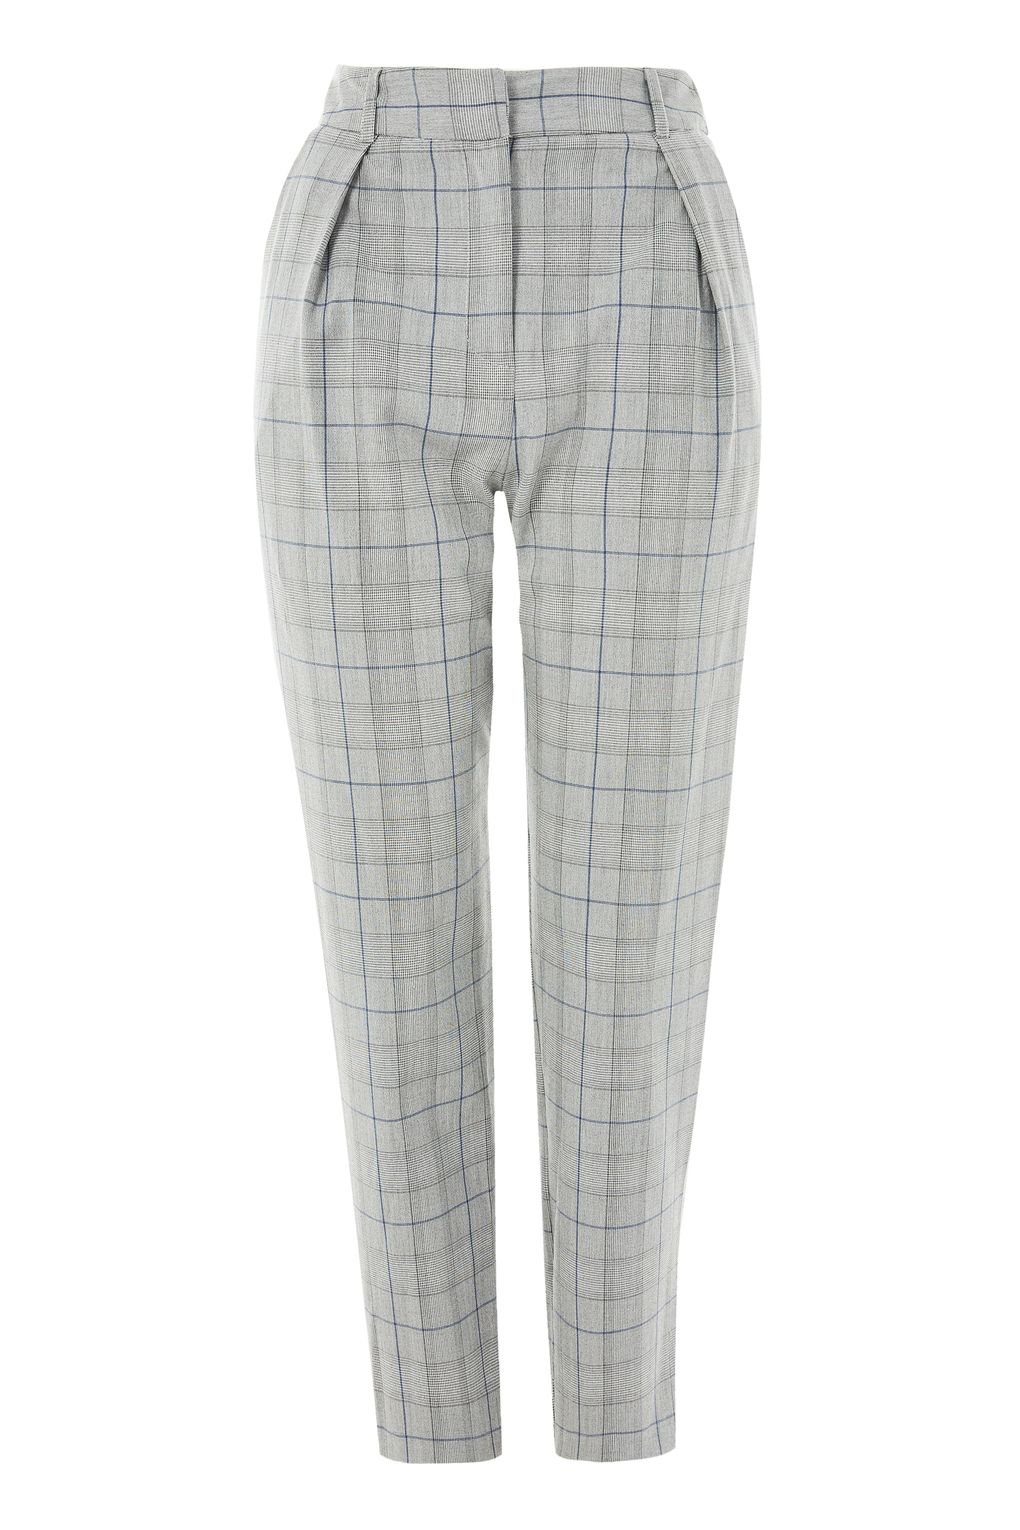 Checked Peg Leg Trousers